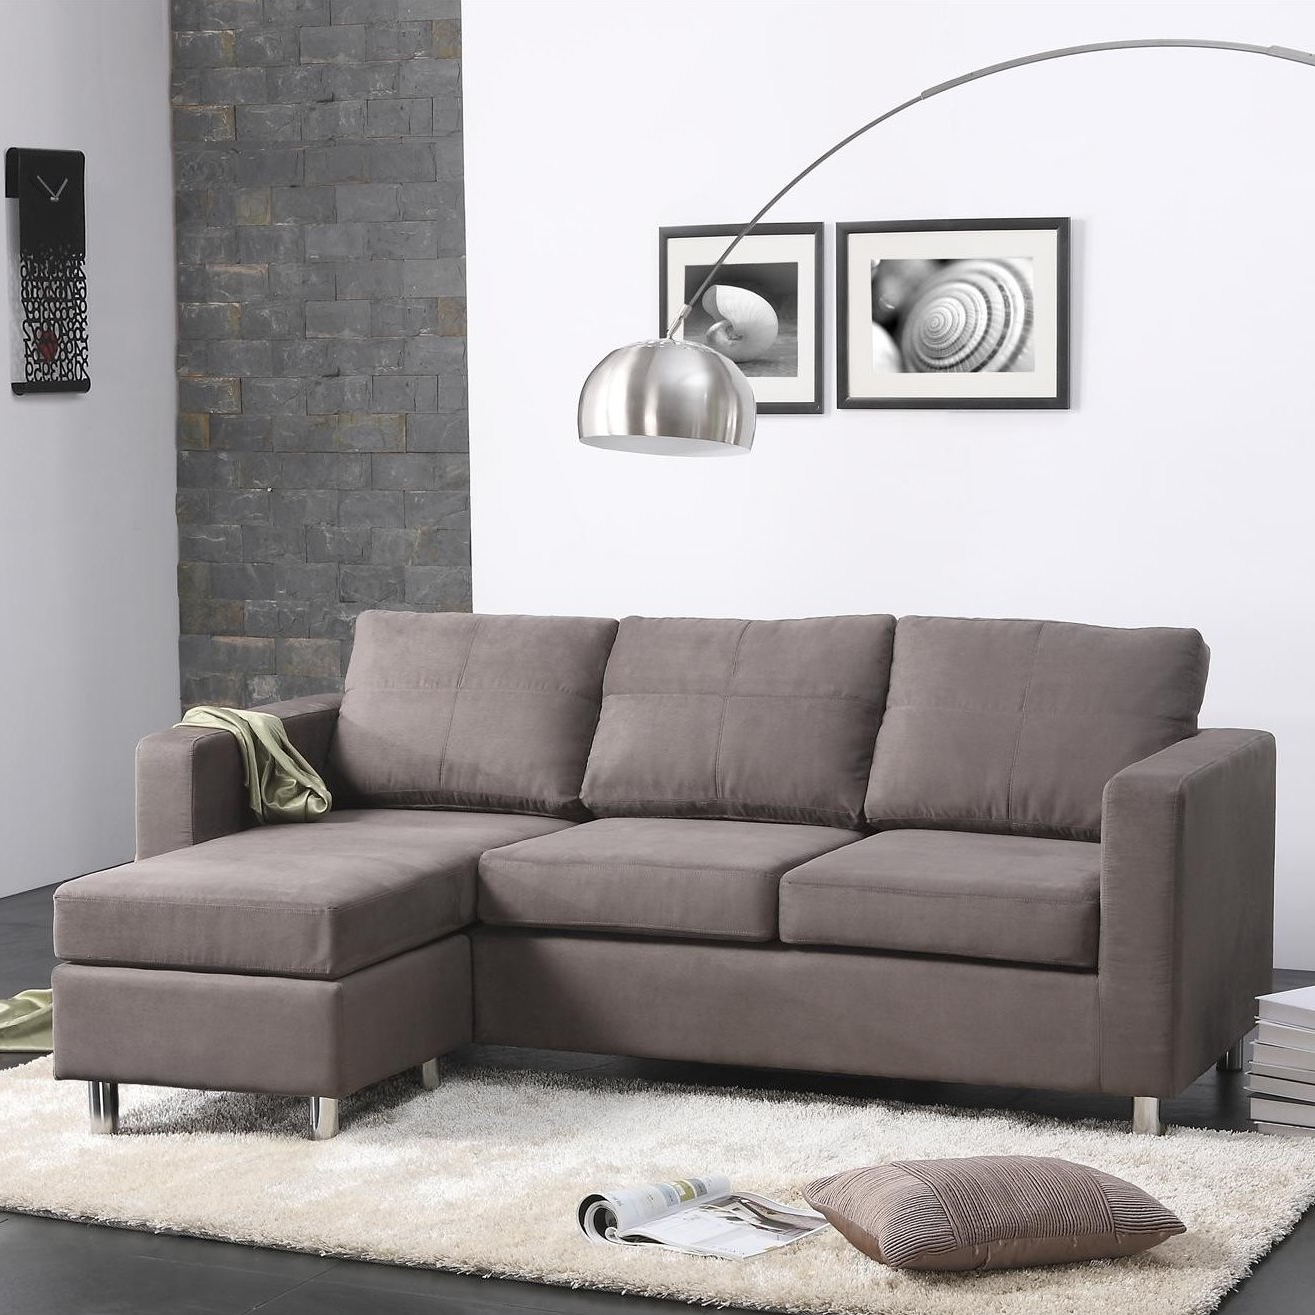 Wayfair With Regard To Most Popular Collins Sofa Sectionals With Reversible Chaise (View 19 of 20)